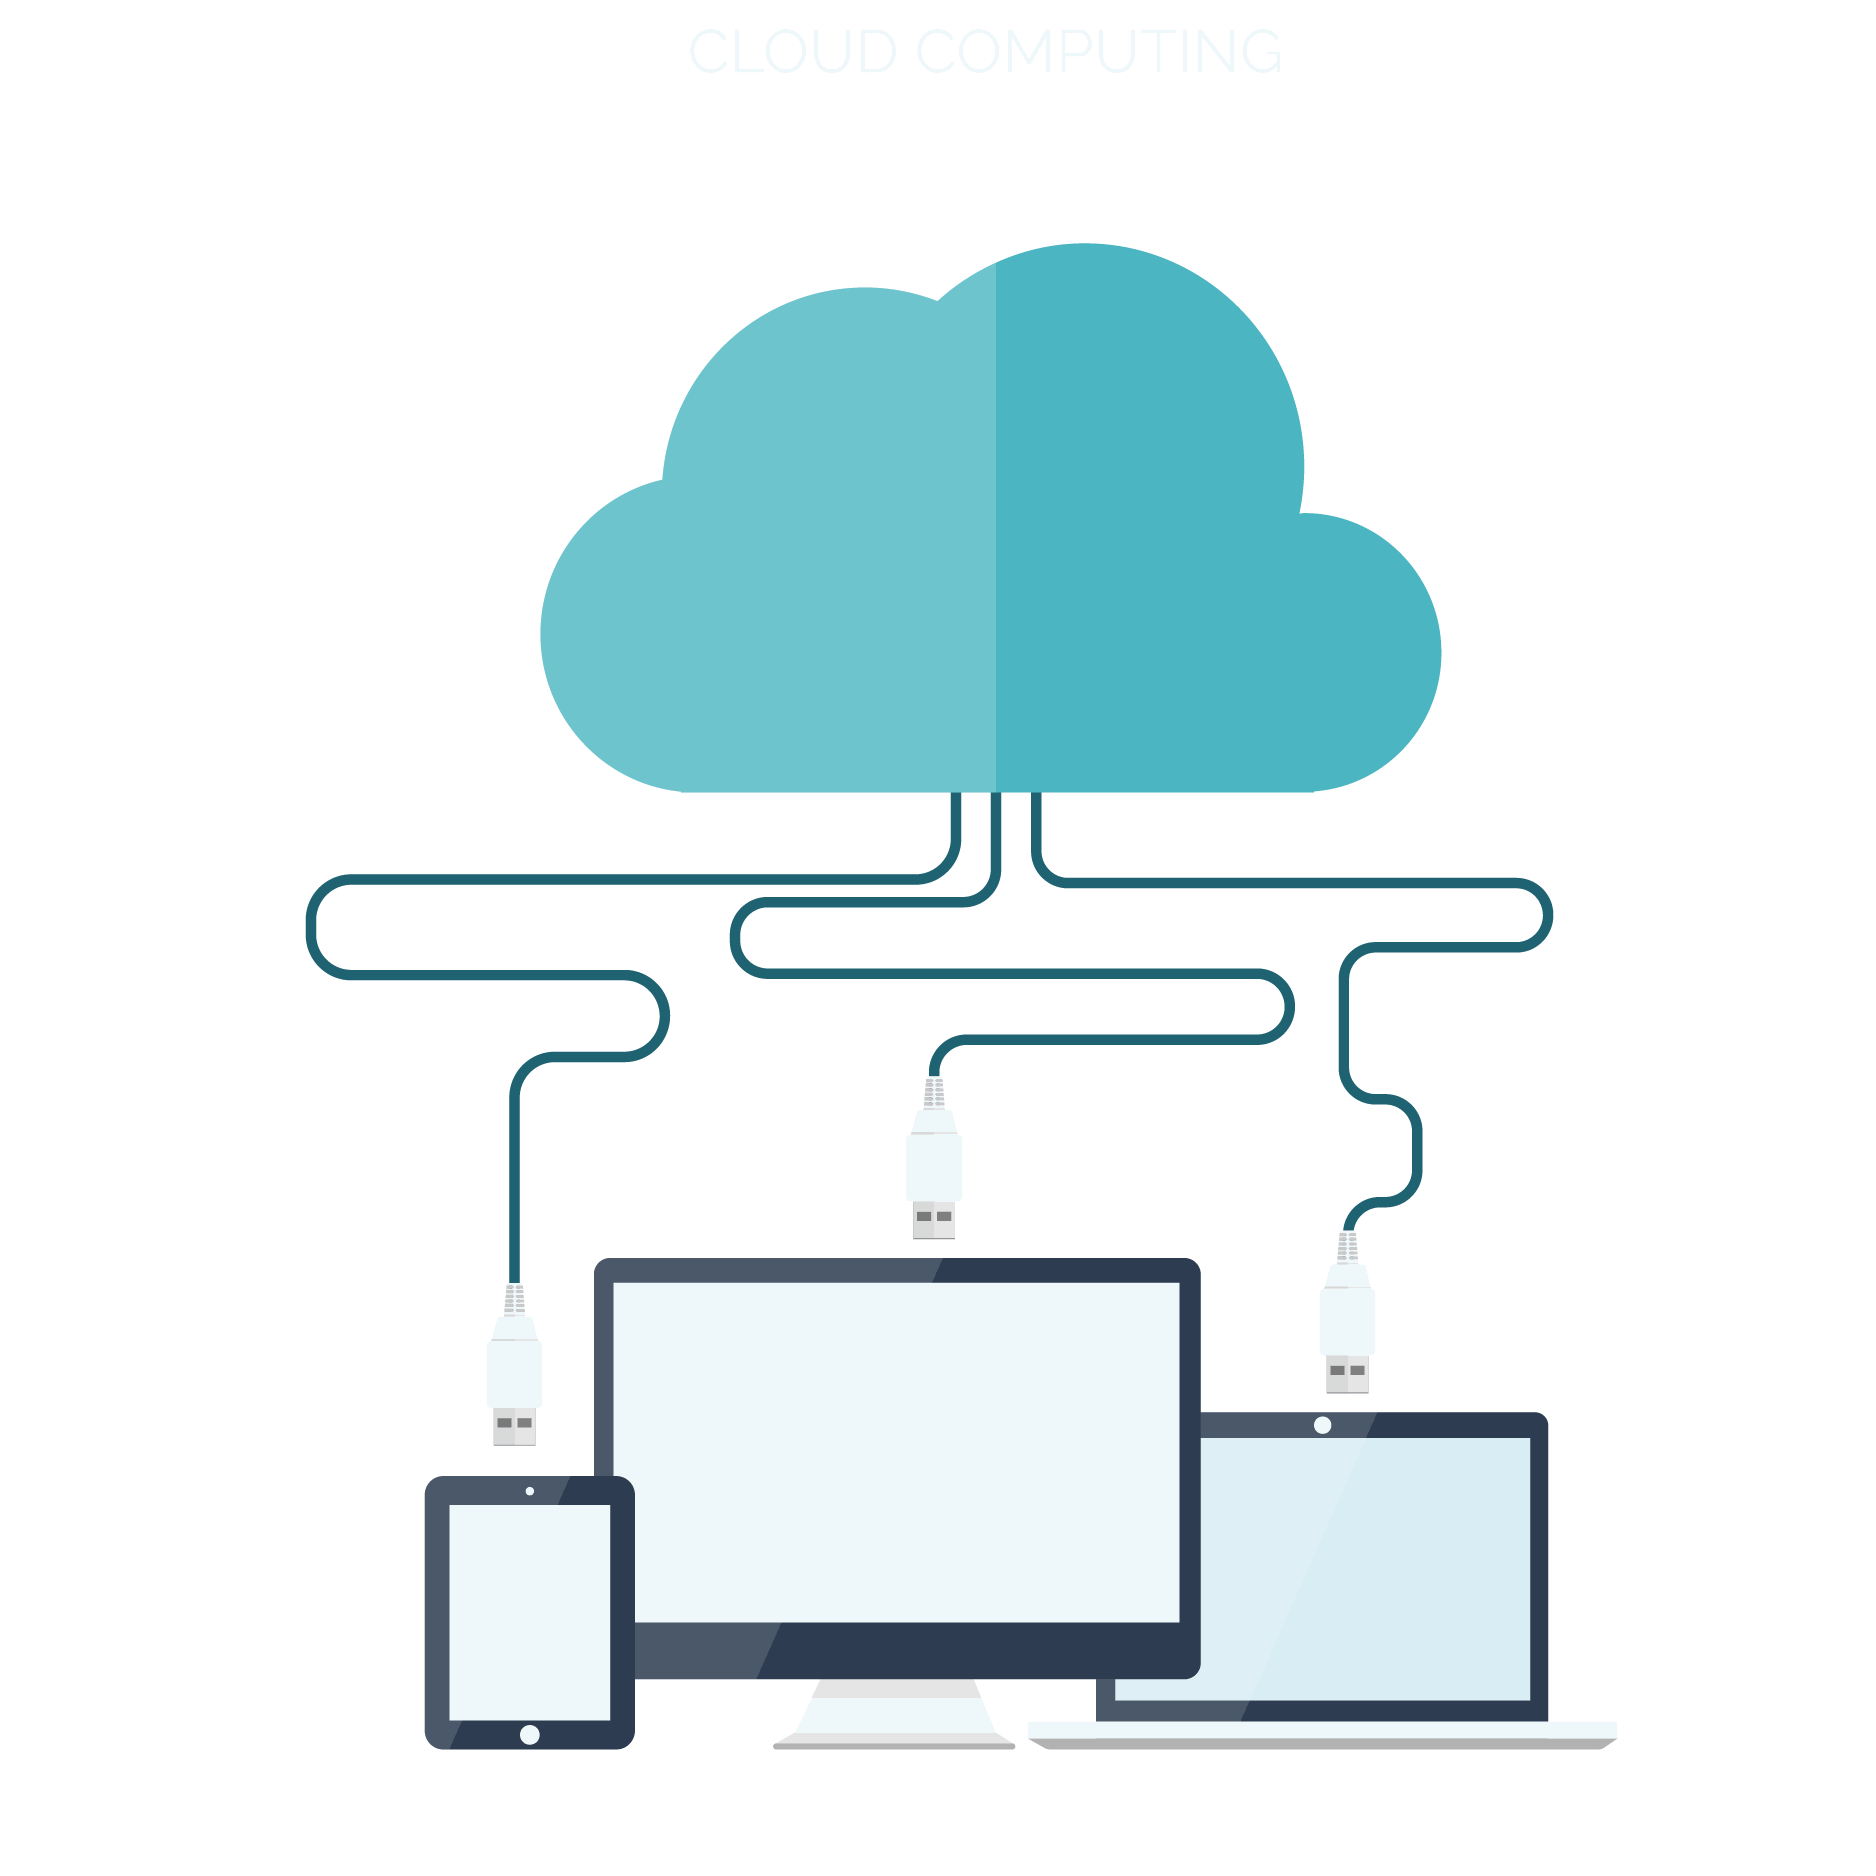 Software as a Service (SaaS) Cloud Services